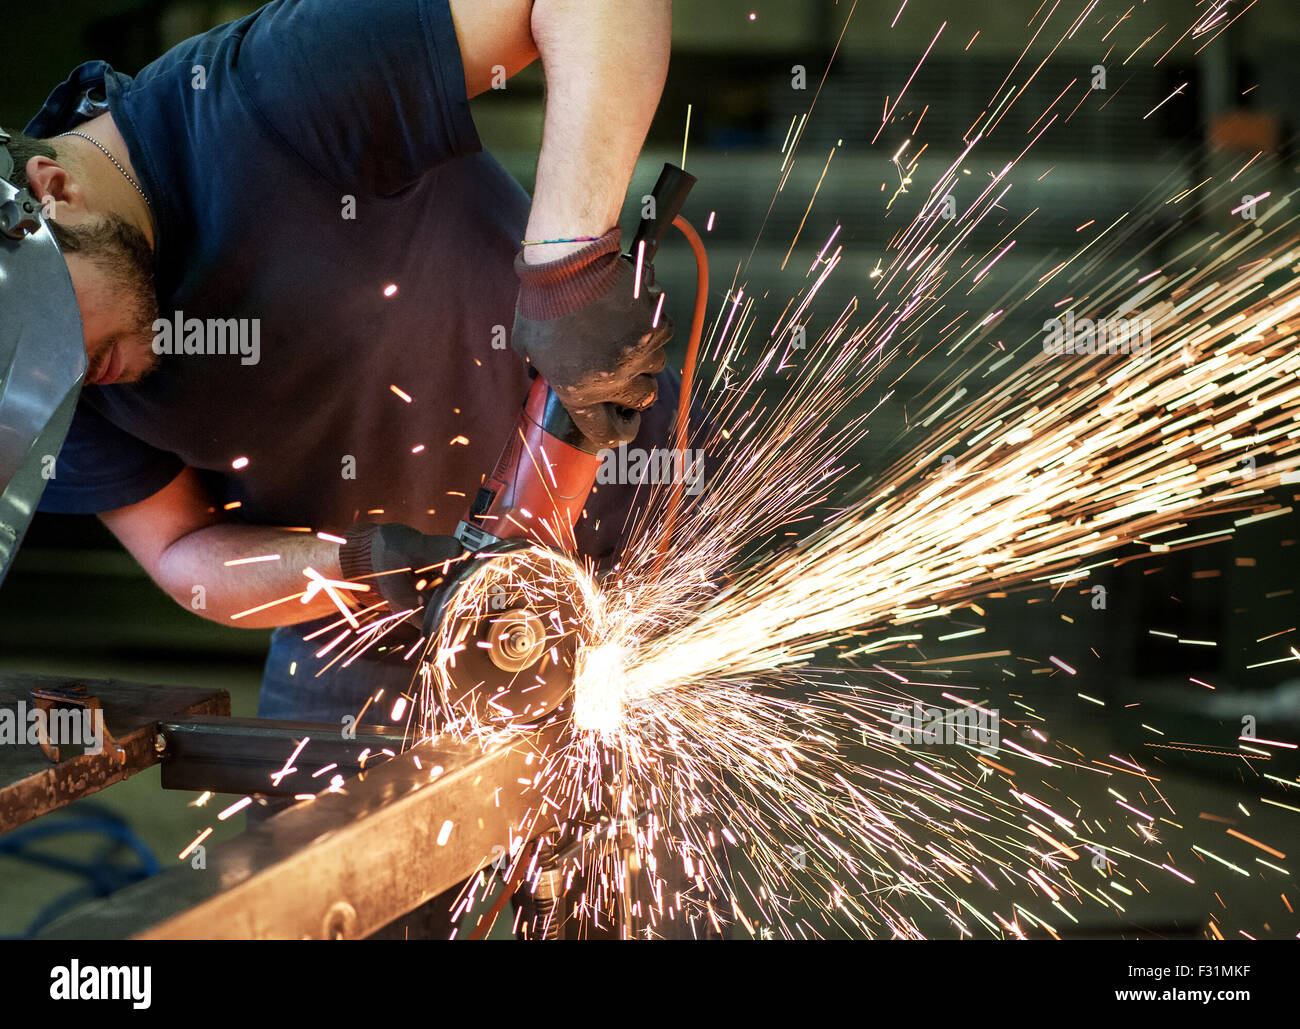 Metalworker cutting a steel bar using a hand held angle grinder power tool - Stock Image